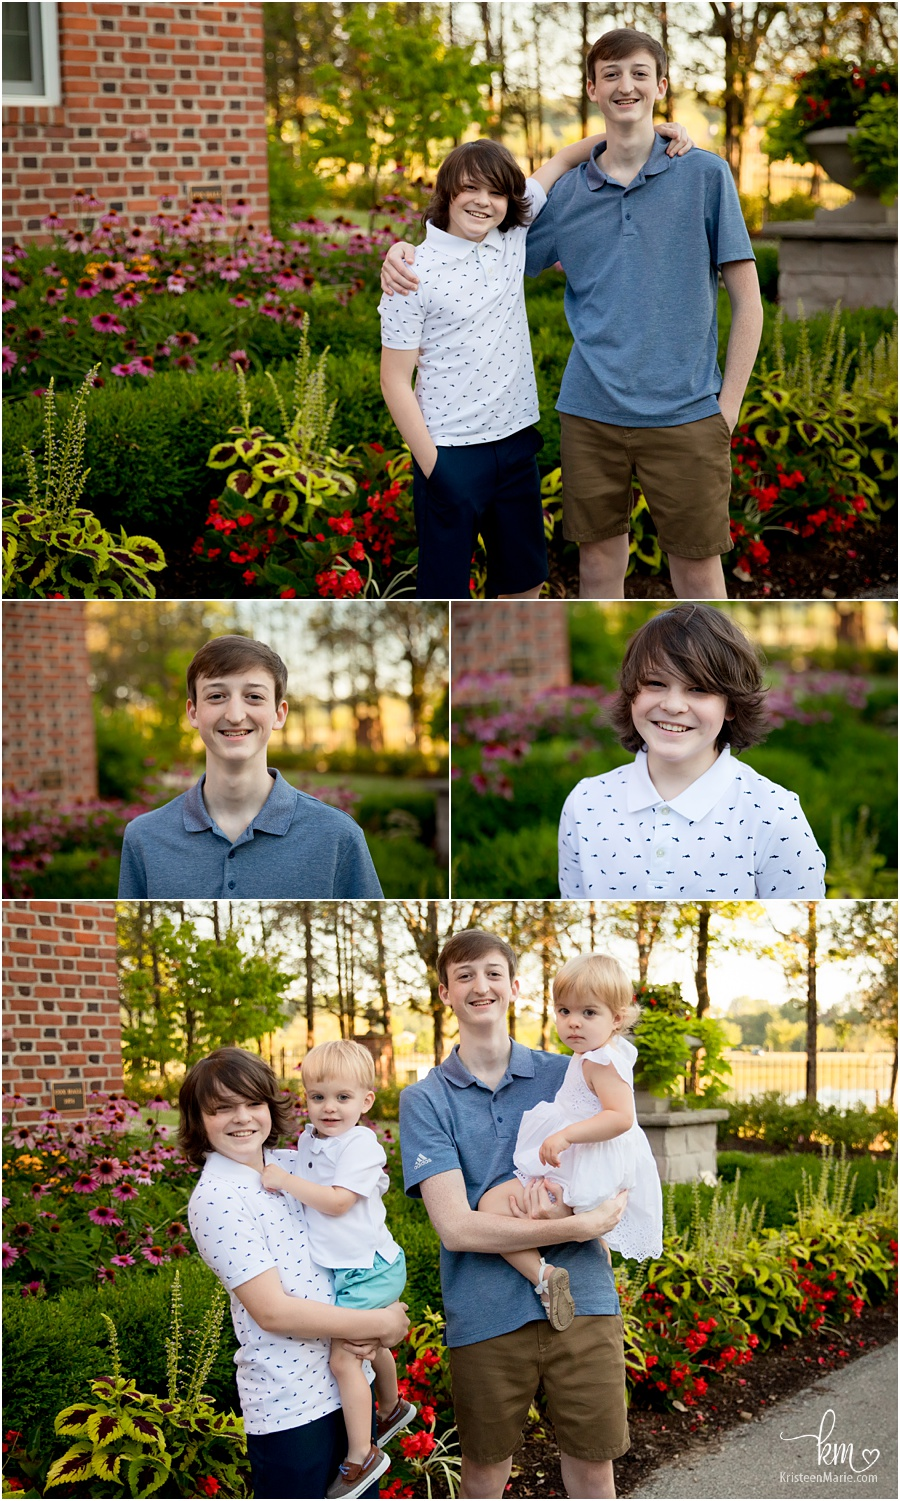 the kids outdoors - older siblings and younger sibling poses